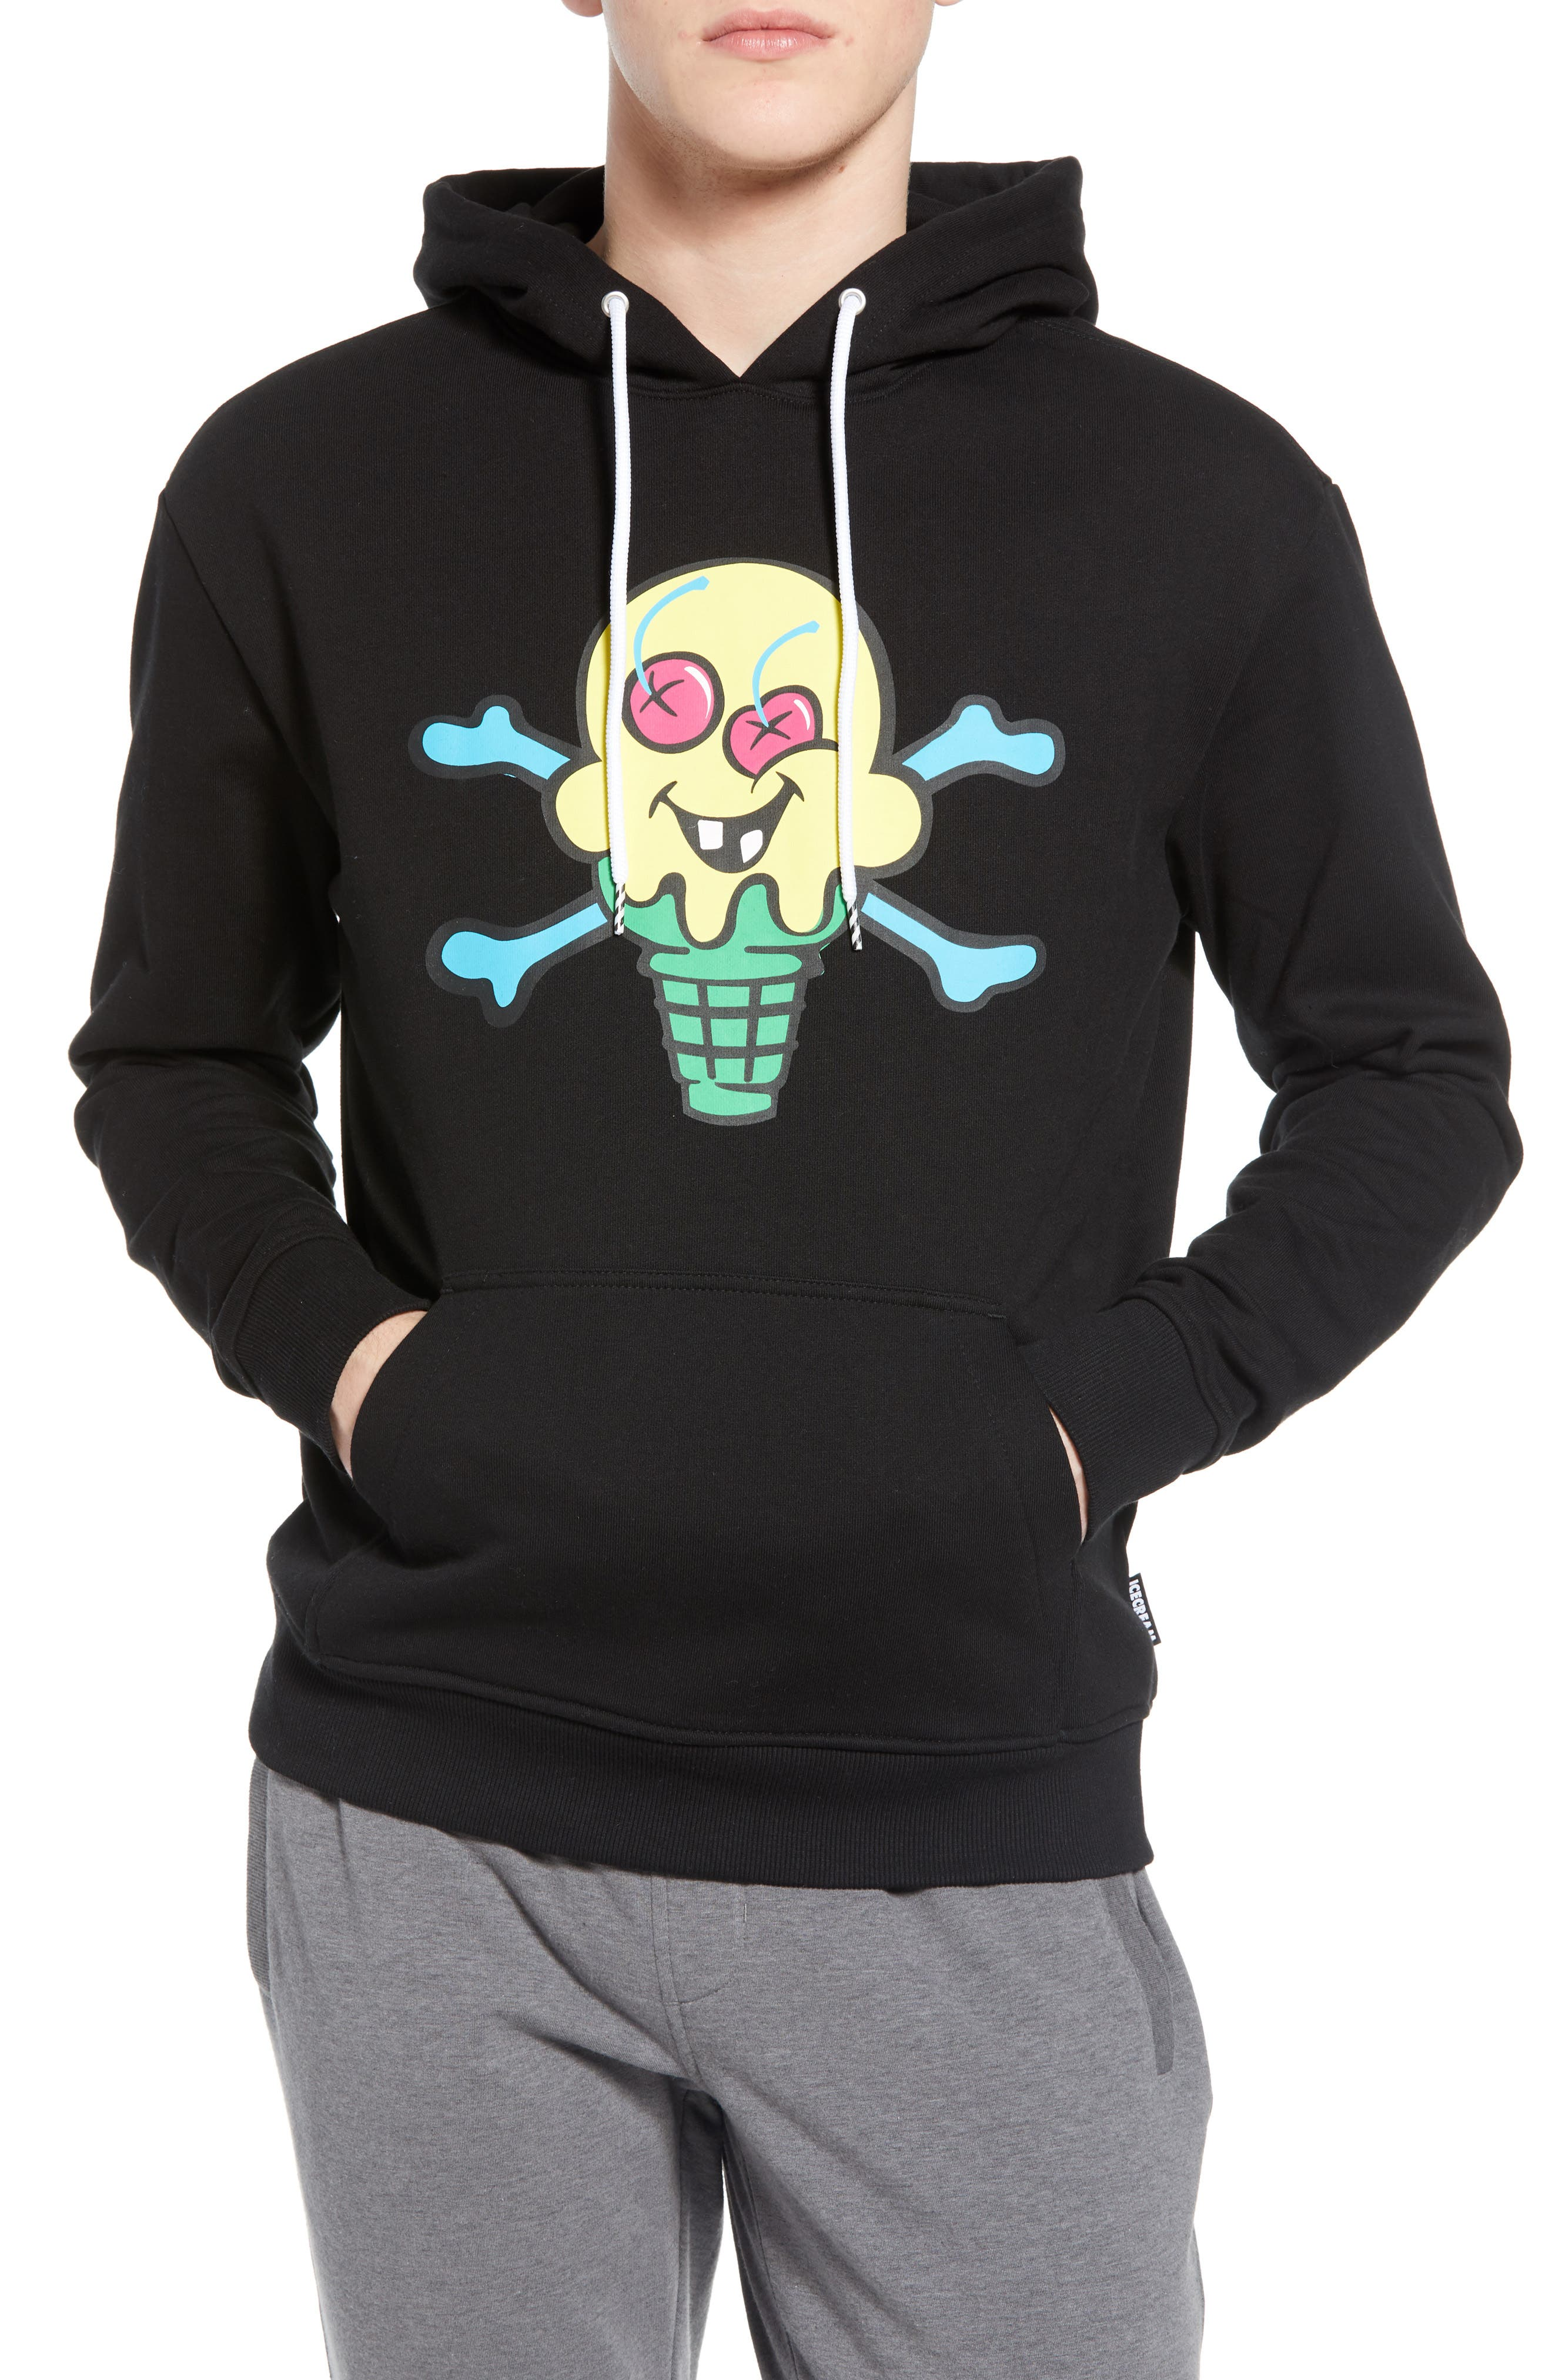 mens french terry sweatshirt   Nordstrom